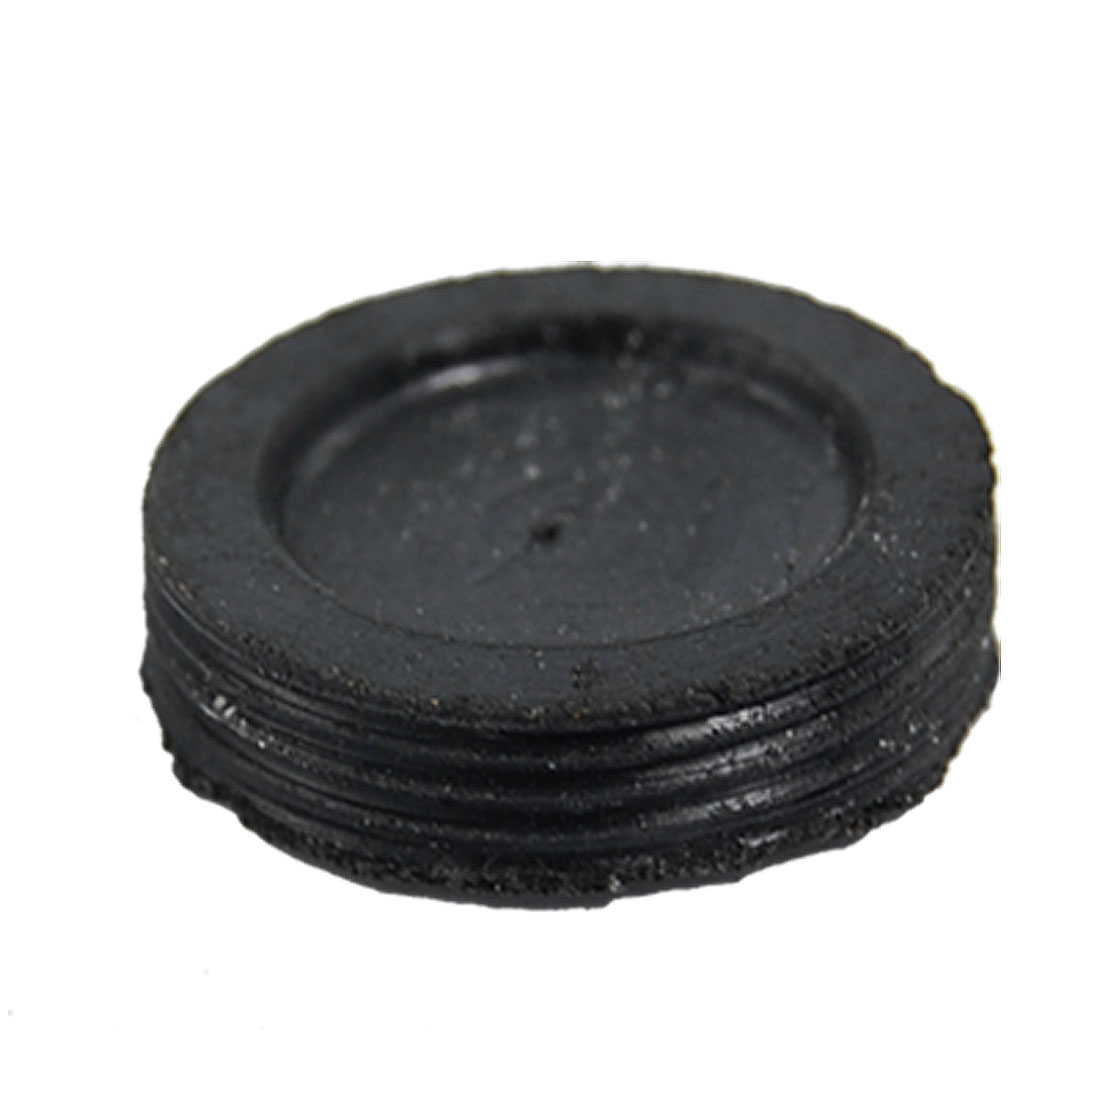 10 Pcs Threaded 19.5mm Diameter Carbon Brush Holder Rear Cap